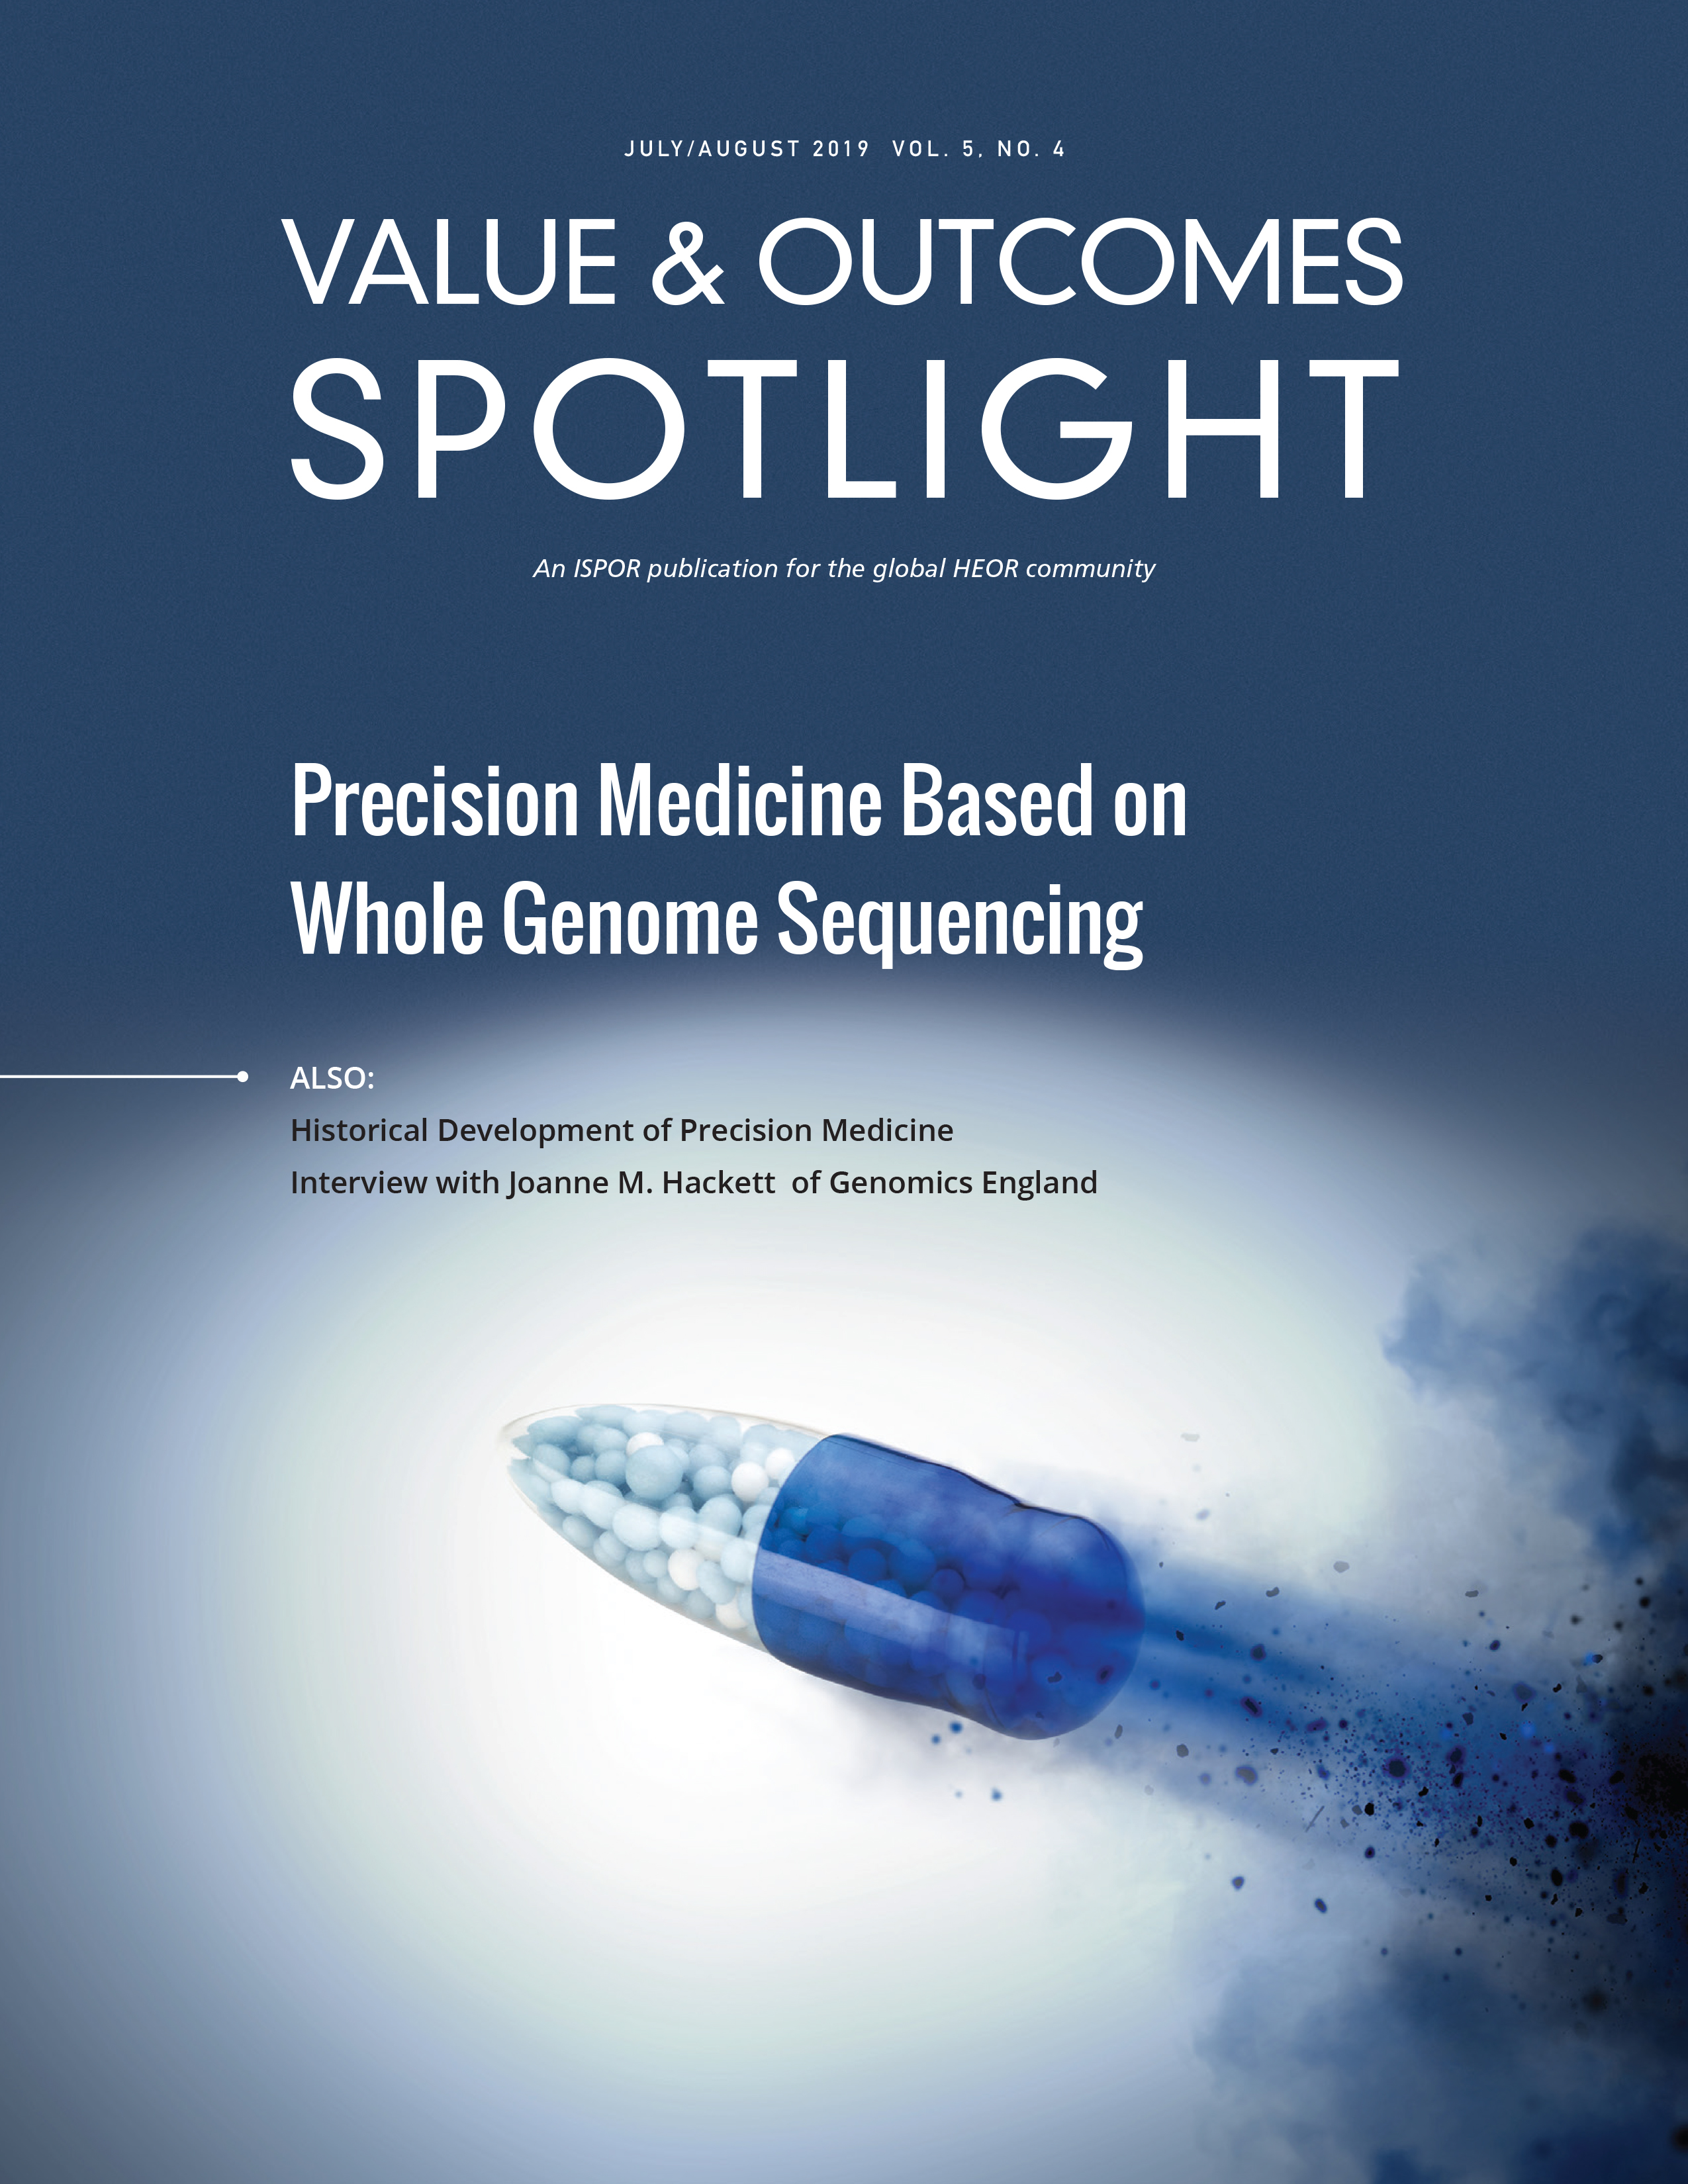 Value & Outcomes July/August 2019 Cover - Precision Medicine Based On Whole Genome Sequencing